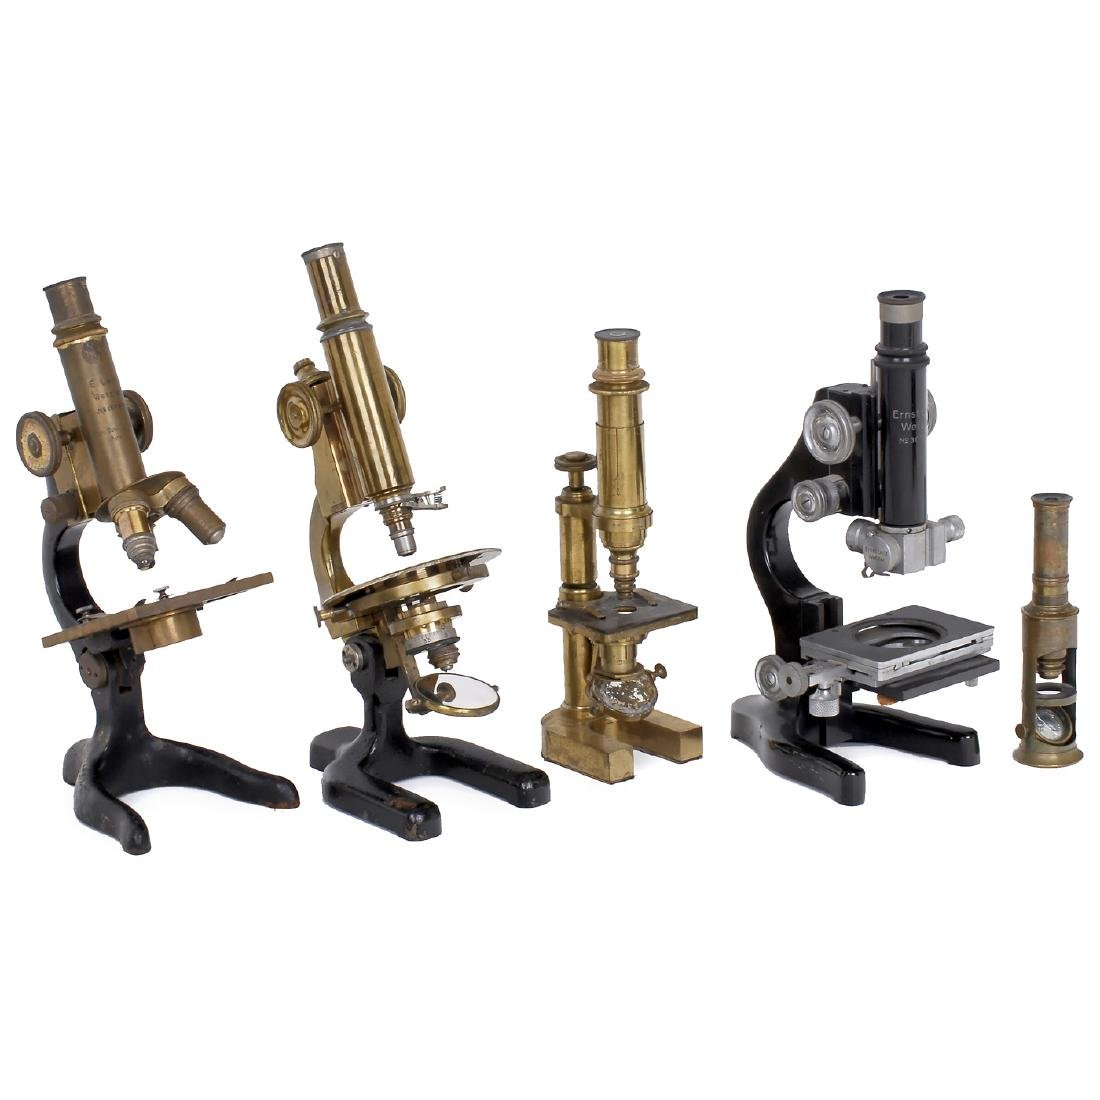 5 Microscopes